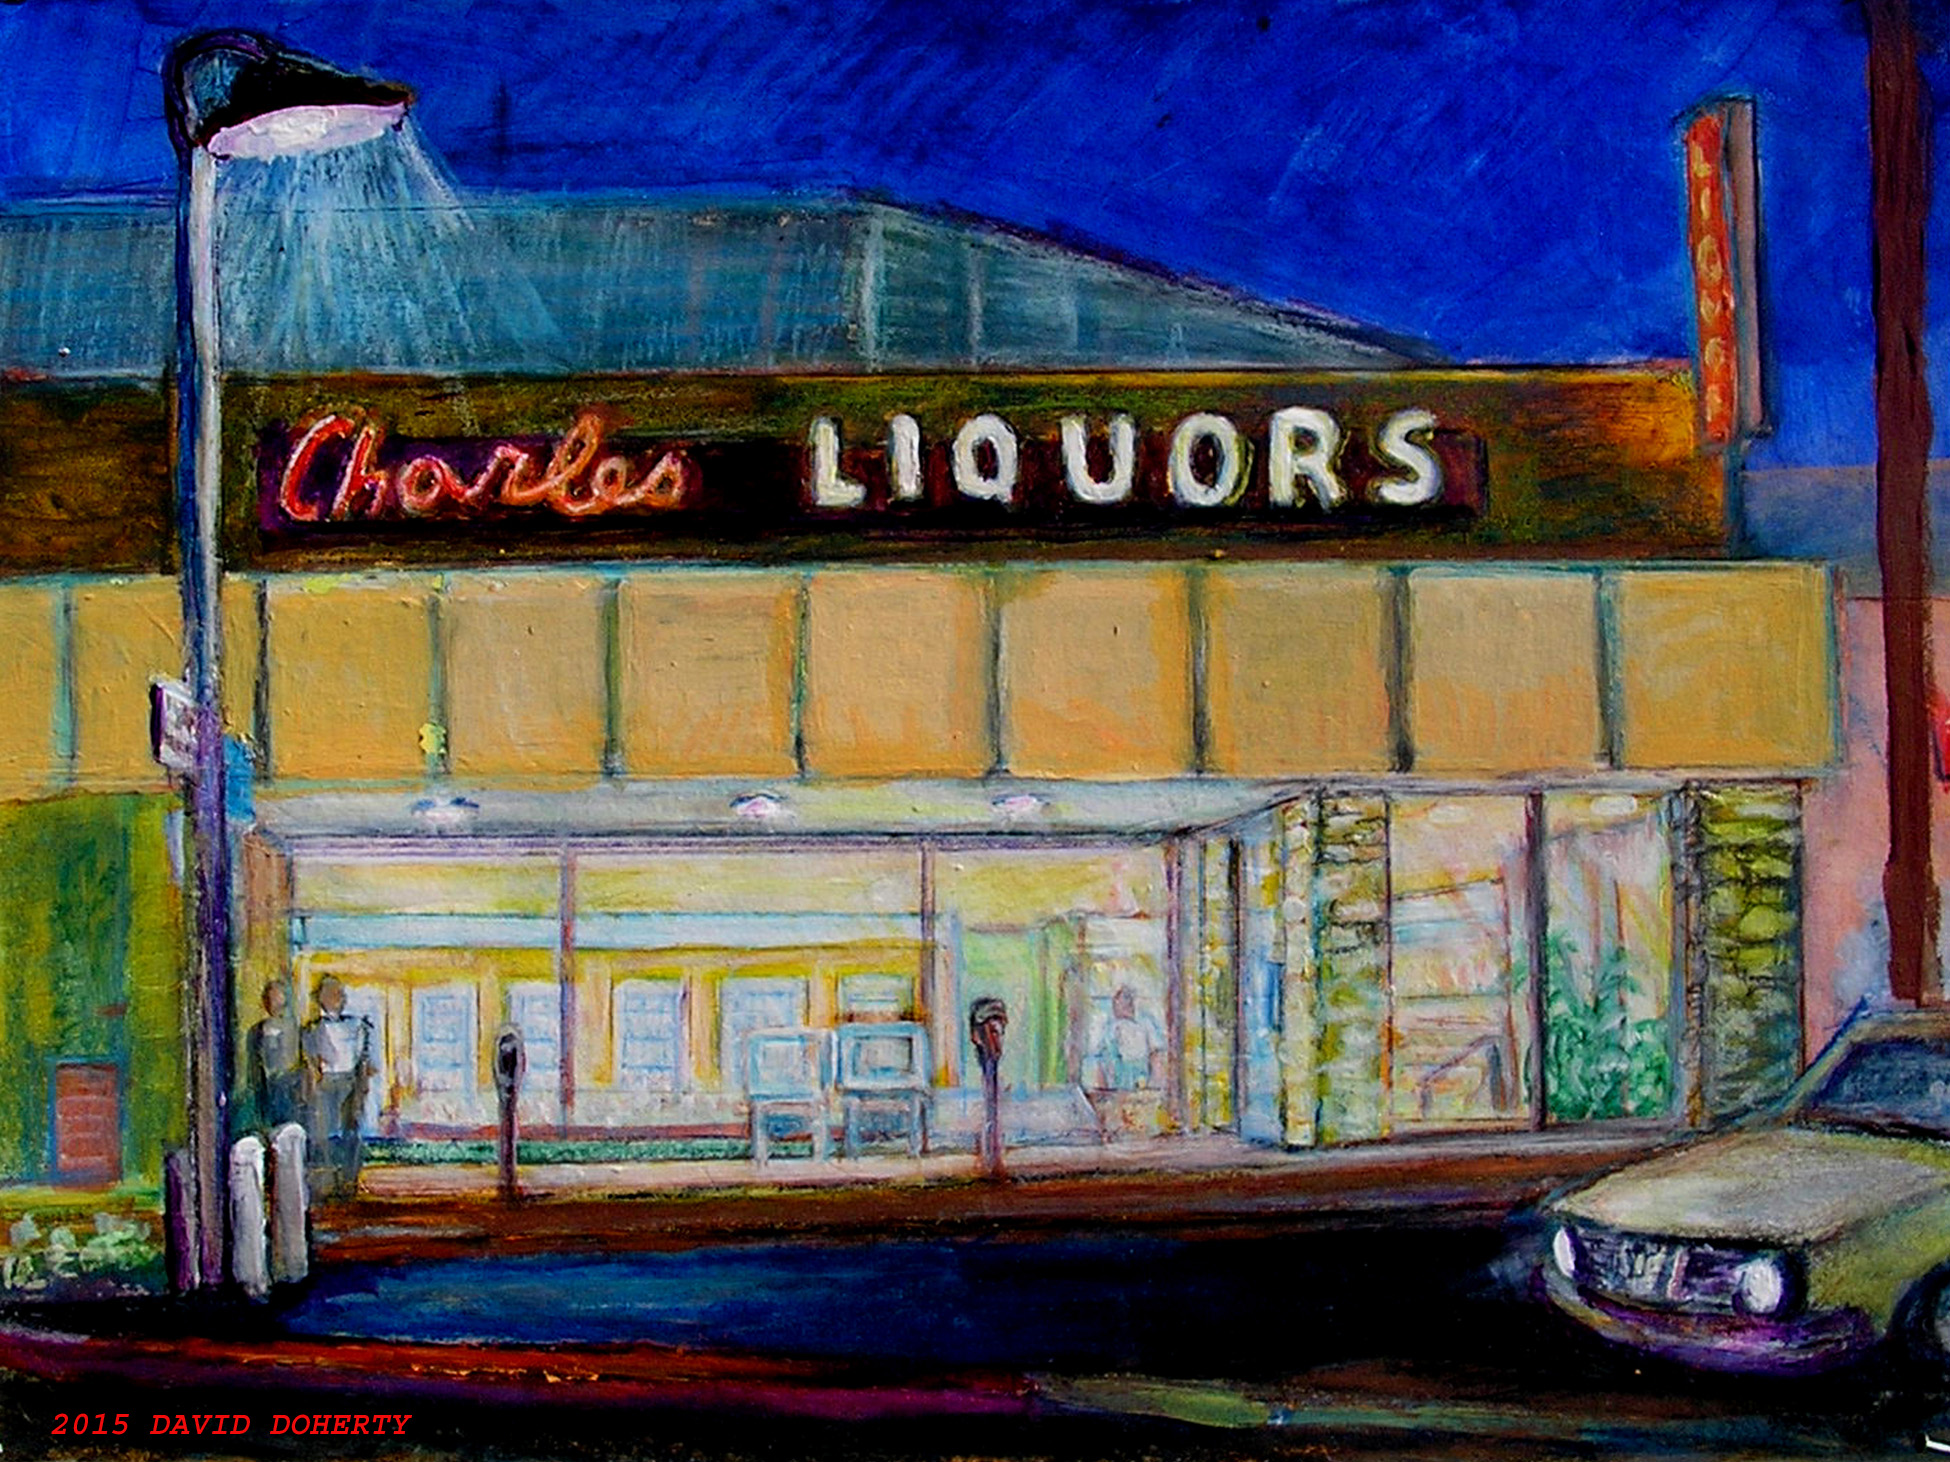 Charles Liquor acrylic on board